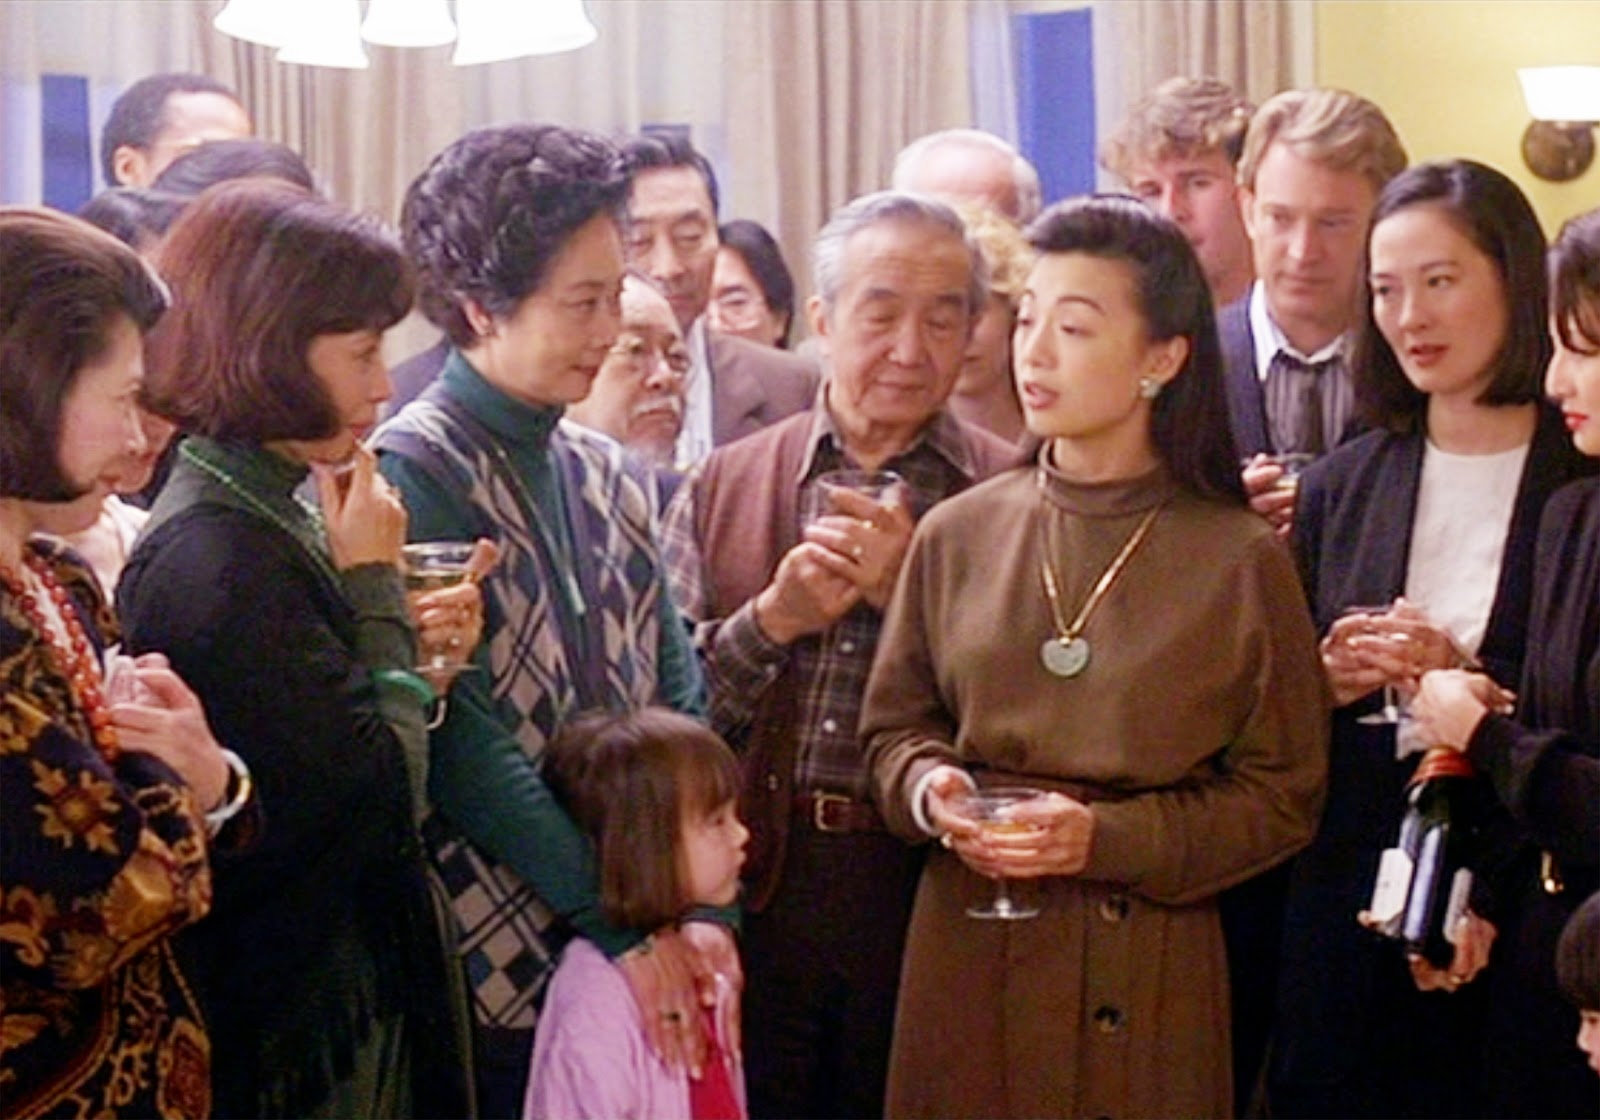 movie review the joy luck club is the story of family first   movie review the joy luck club is the story of family first cultures second marcusgohmarcusgoh